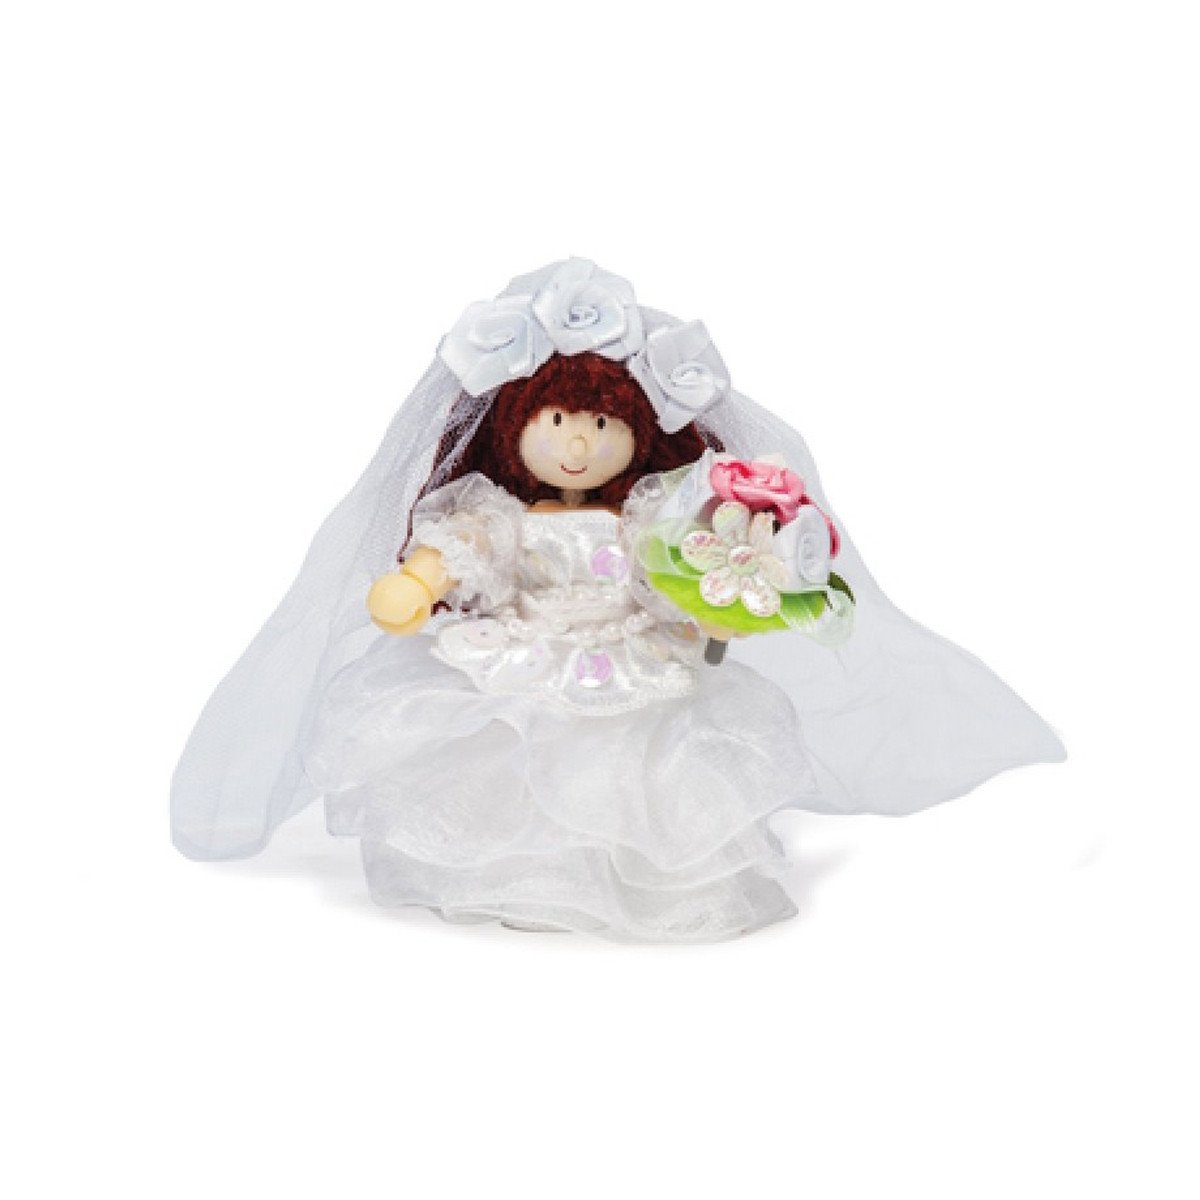 Le Toy Van Budkins Individual Doll House People Le Toy Van Pretend Play Bride at Little Earth Nest Eco Shop